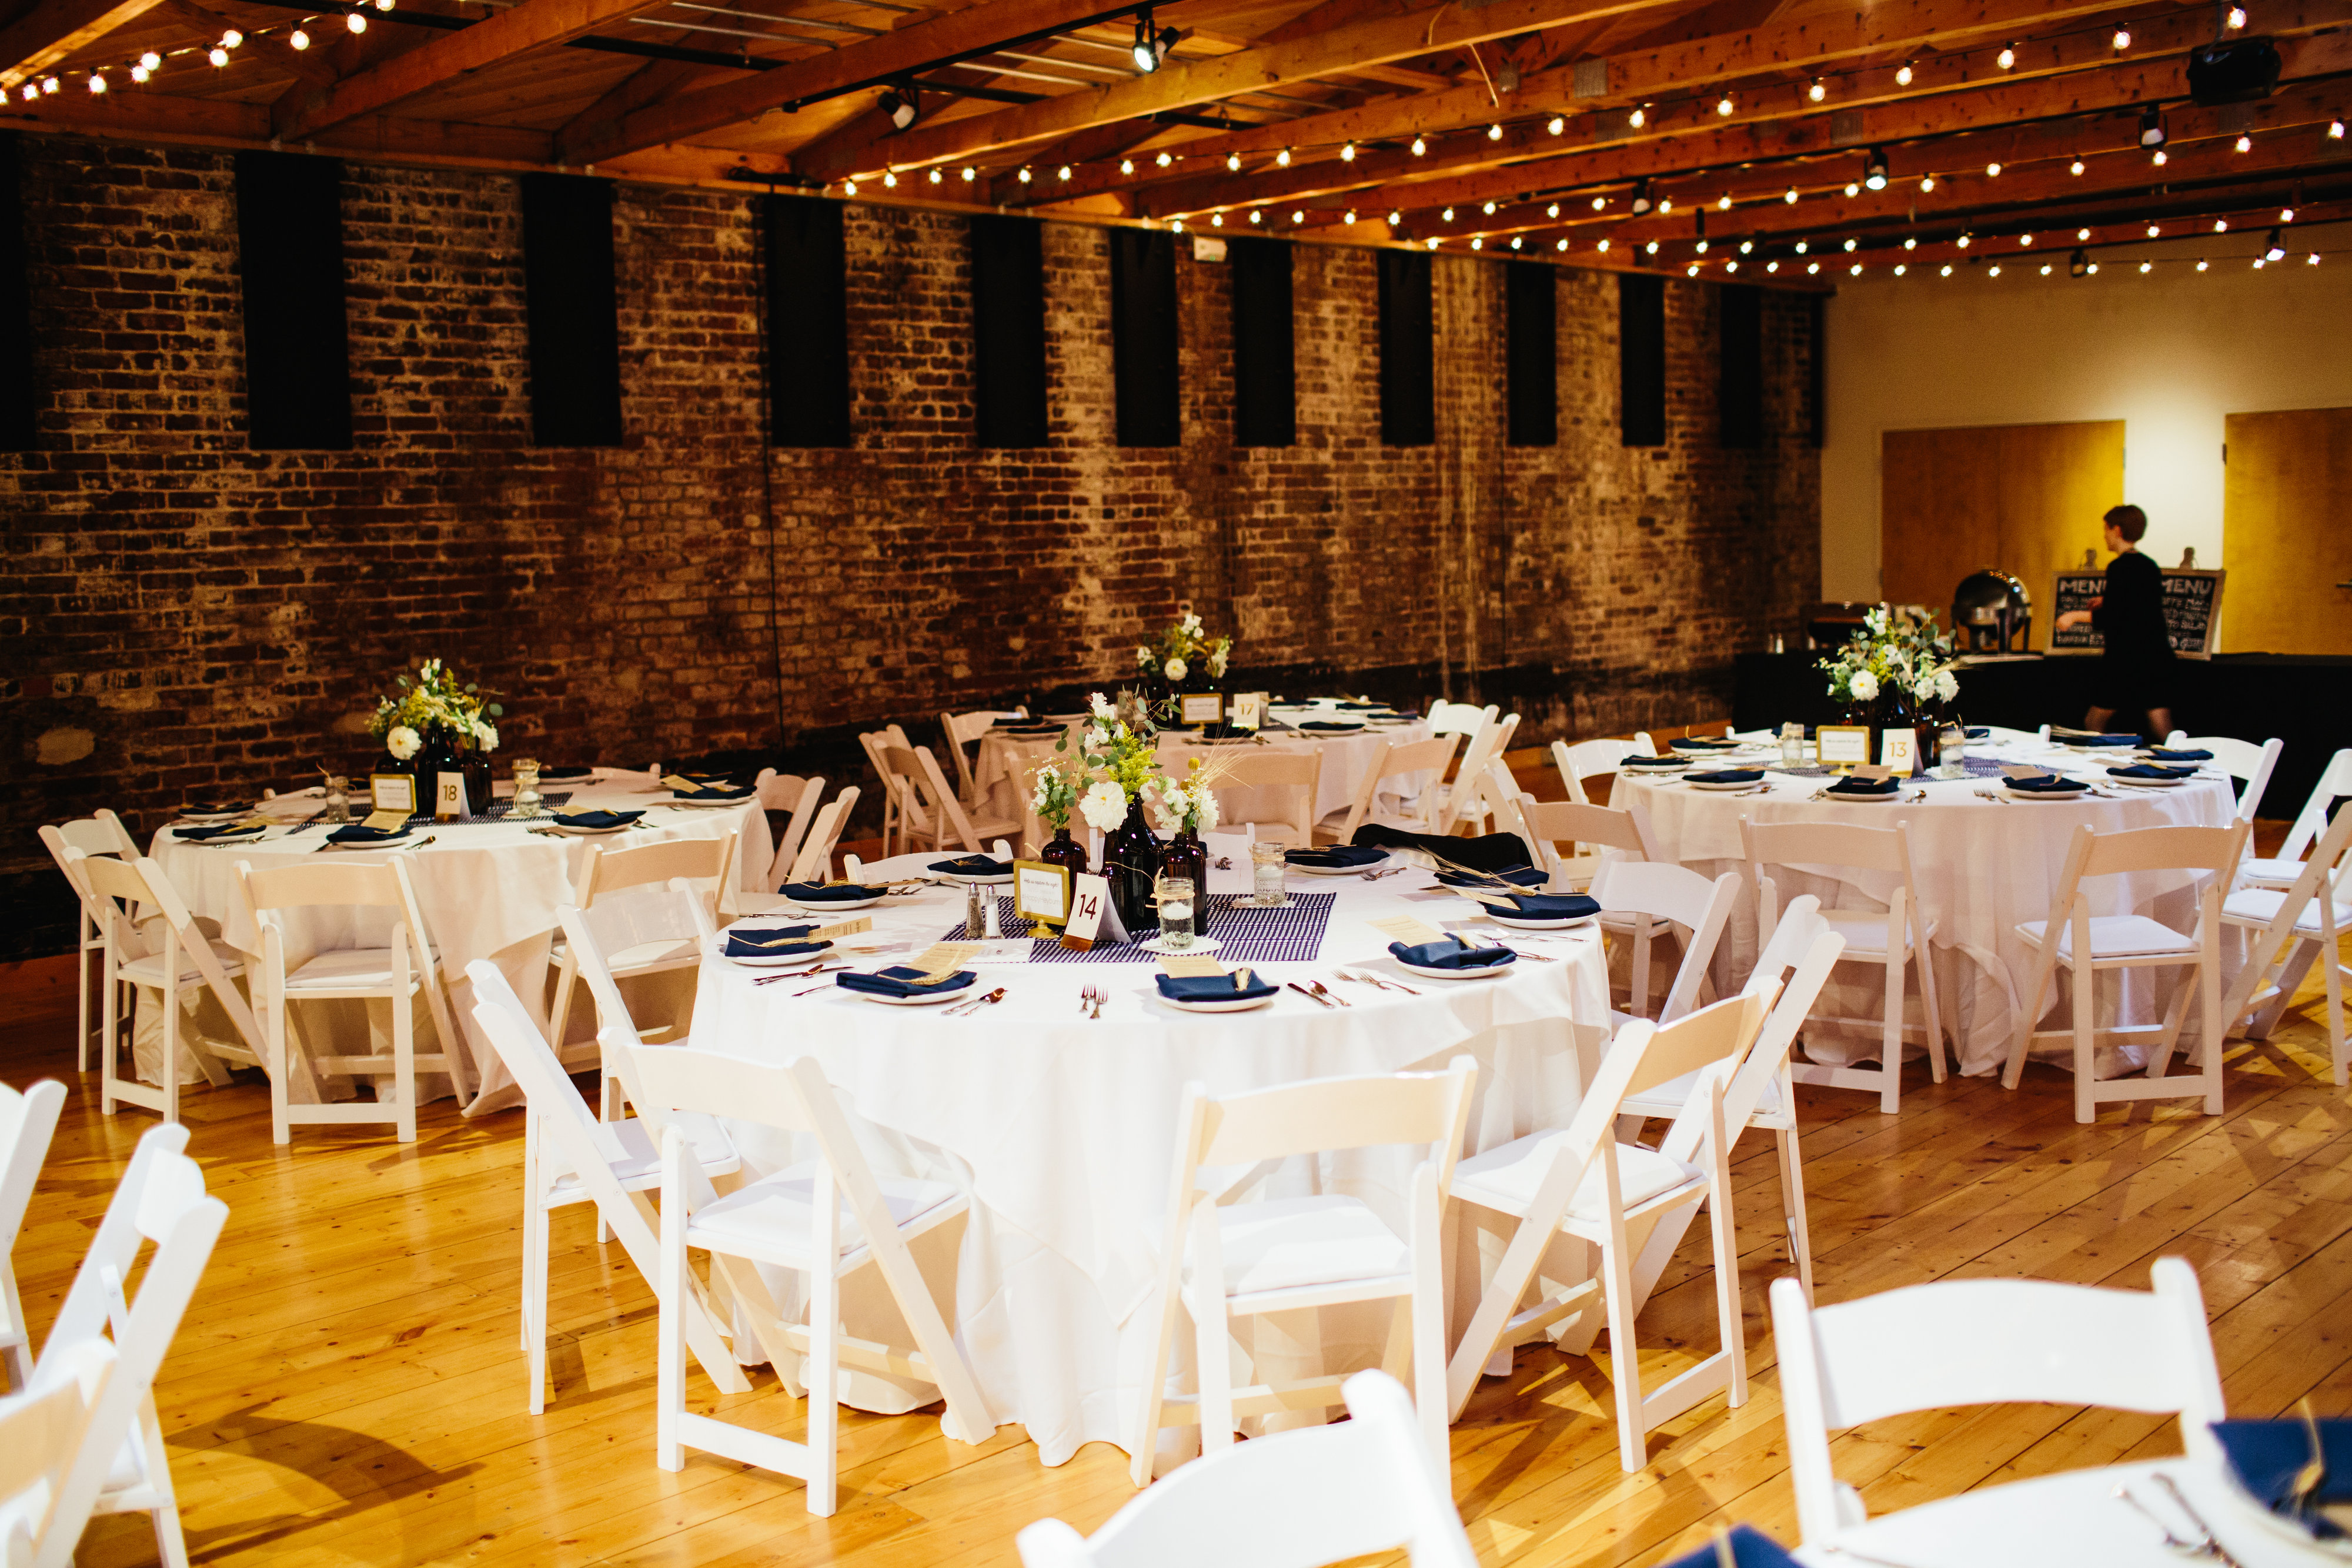 Tips For Seating Your Wedding Reception Guests I Do Weddings Events